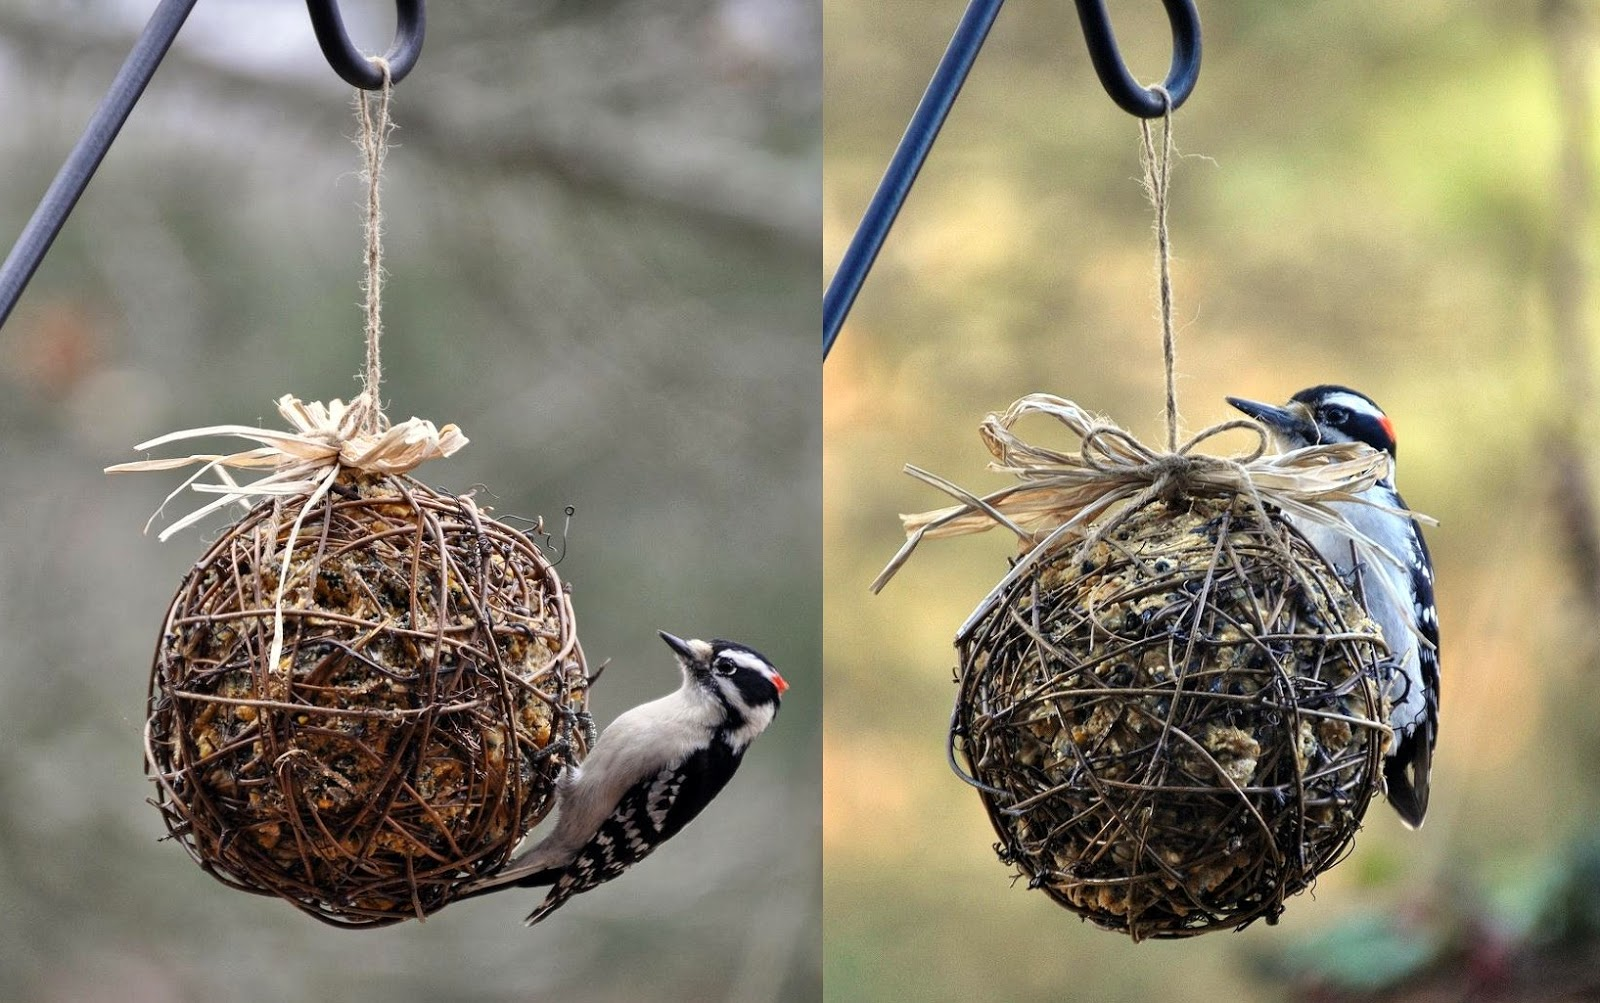 The garden roof coop diy suet feeders male downy and male hairy woodpeckers they are lookalikes until theyre side by side solutioingenieria Image collections